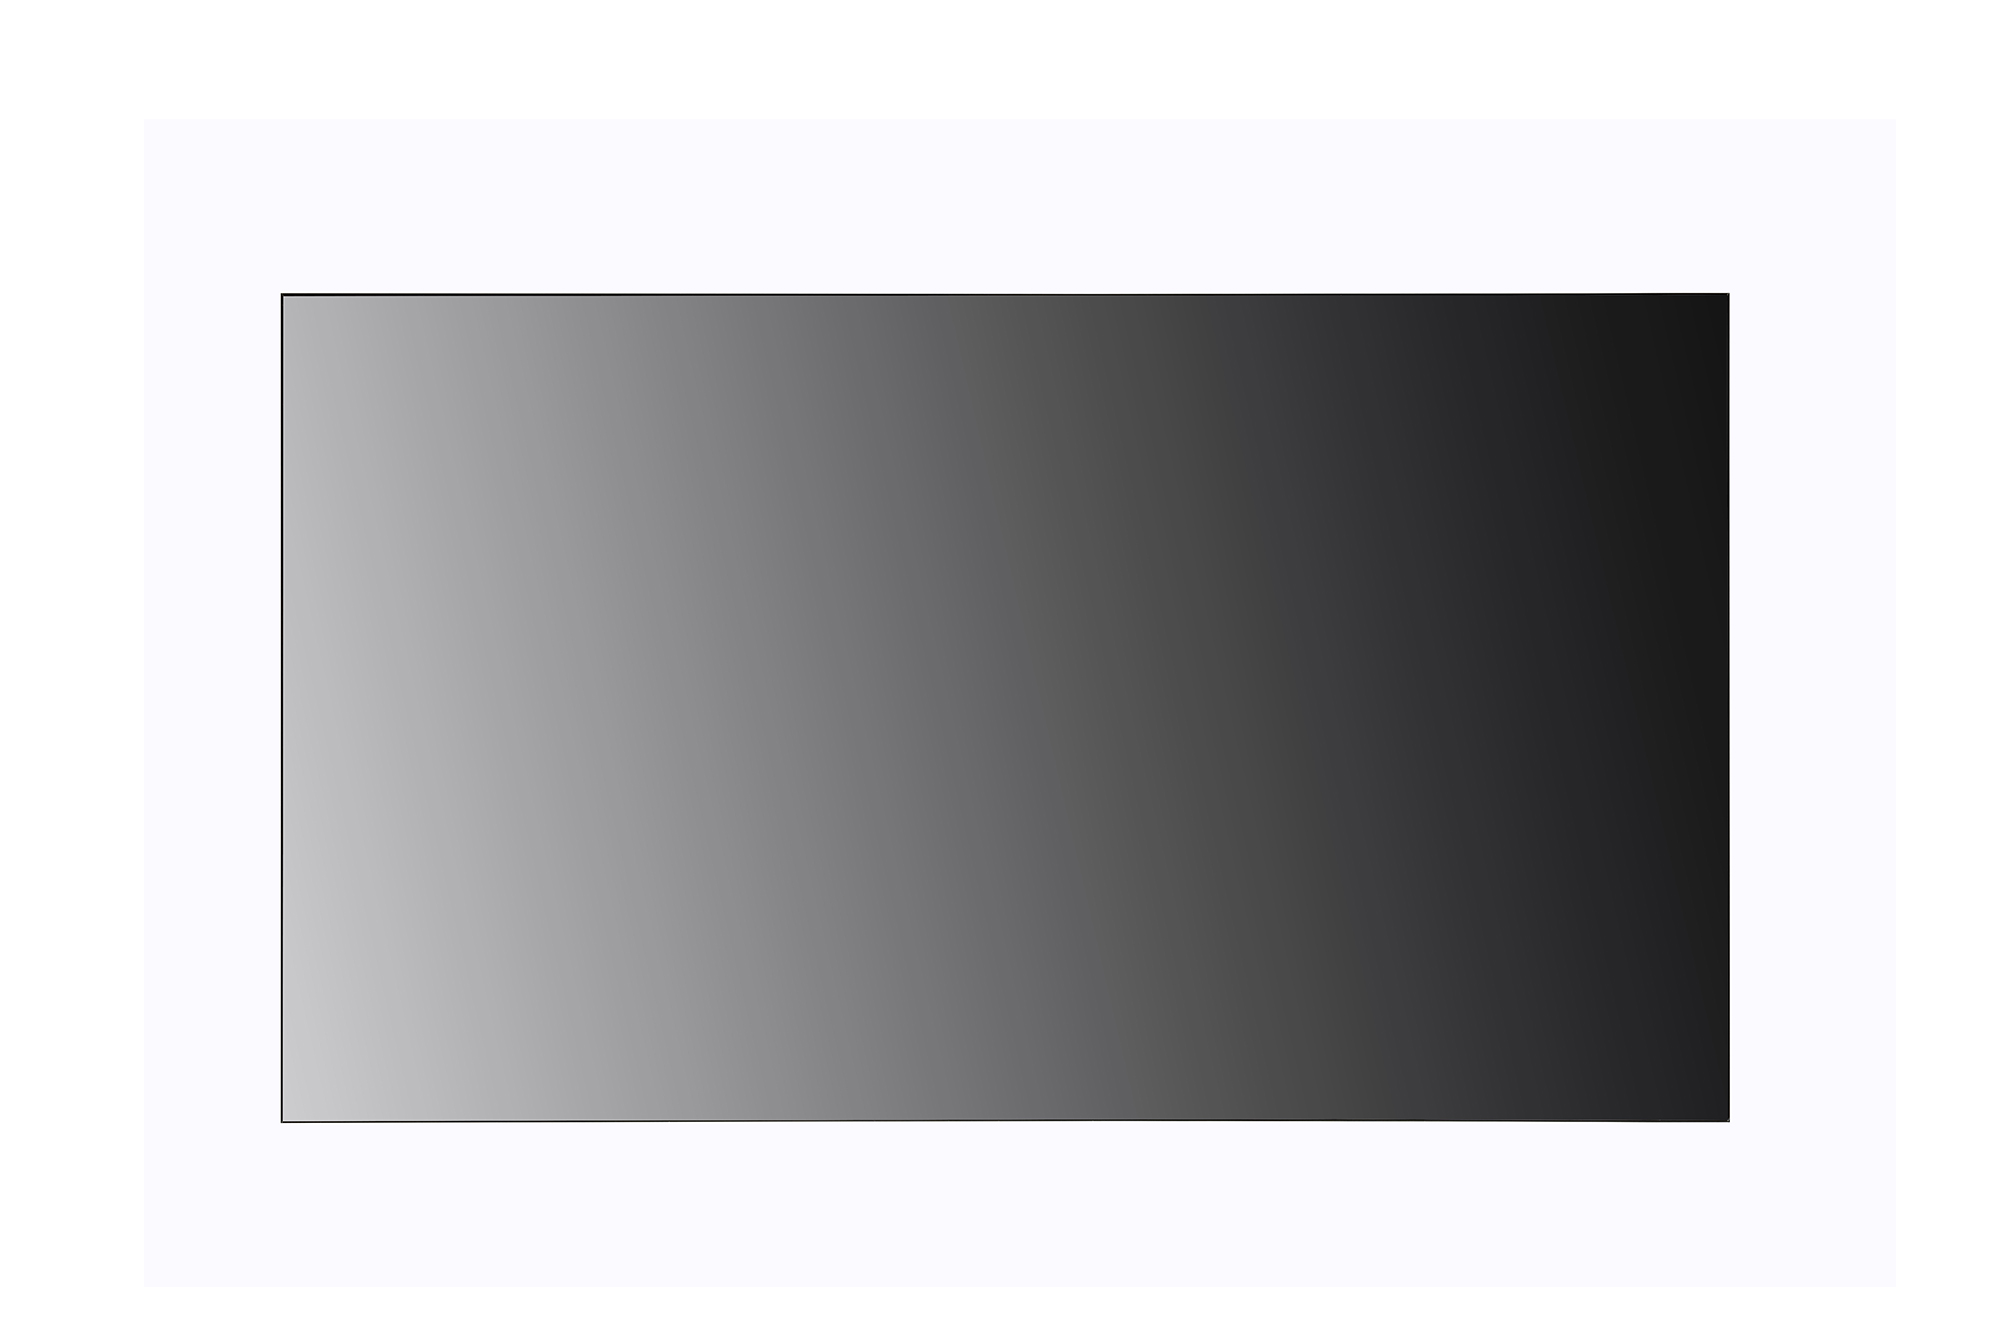 OLED Signage 55EJ5G Front view